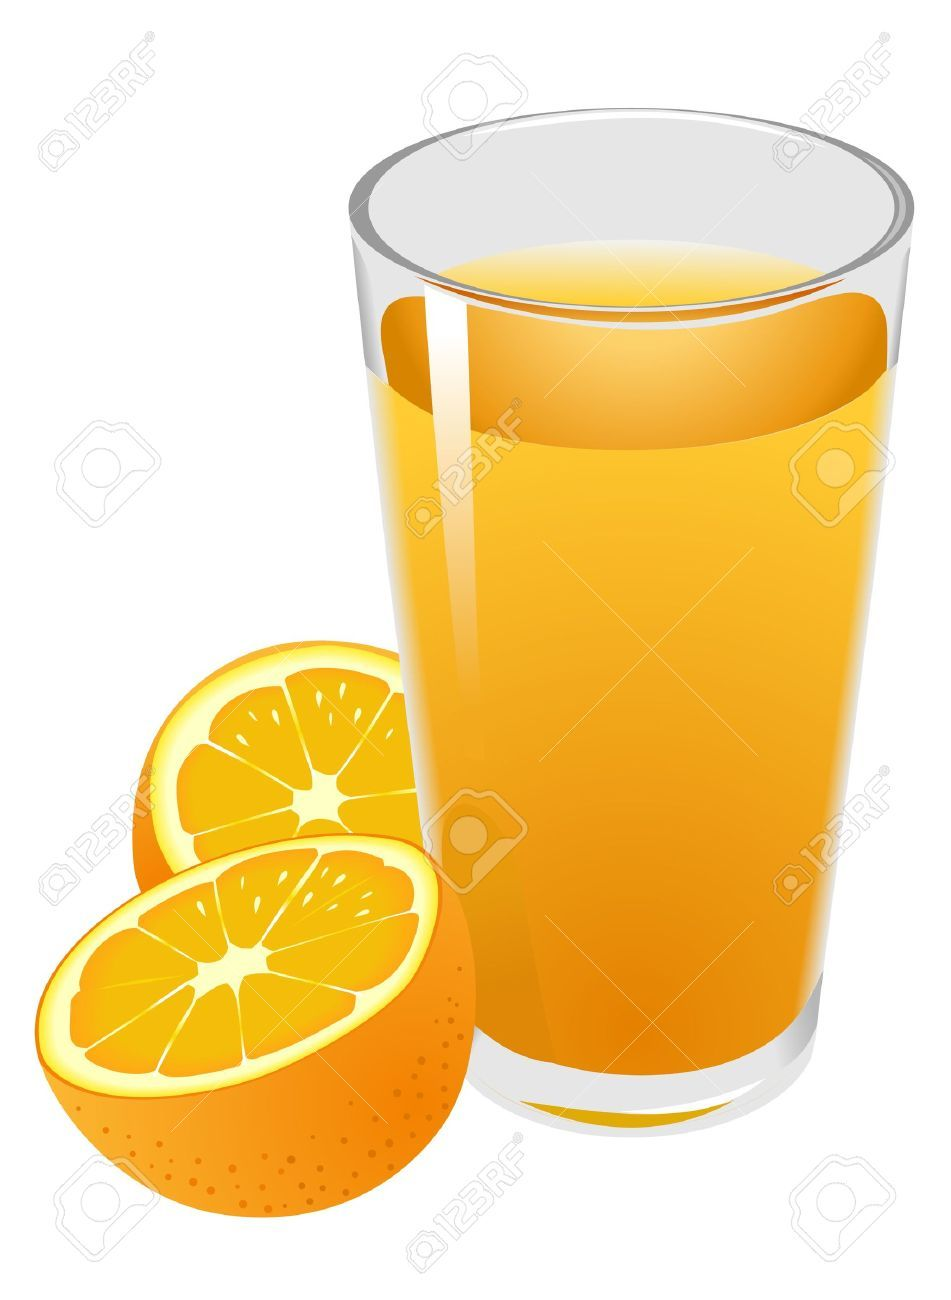 Juice images clipart jpg transparent stock Glass of orange juice clipart 2 » Clipart Portal jpg transparent stock